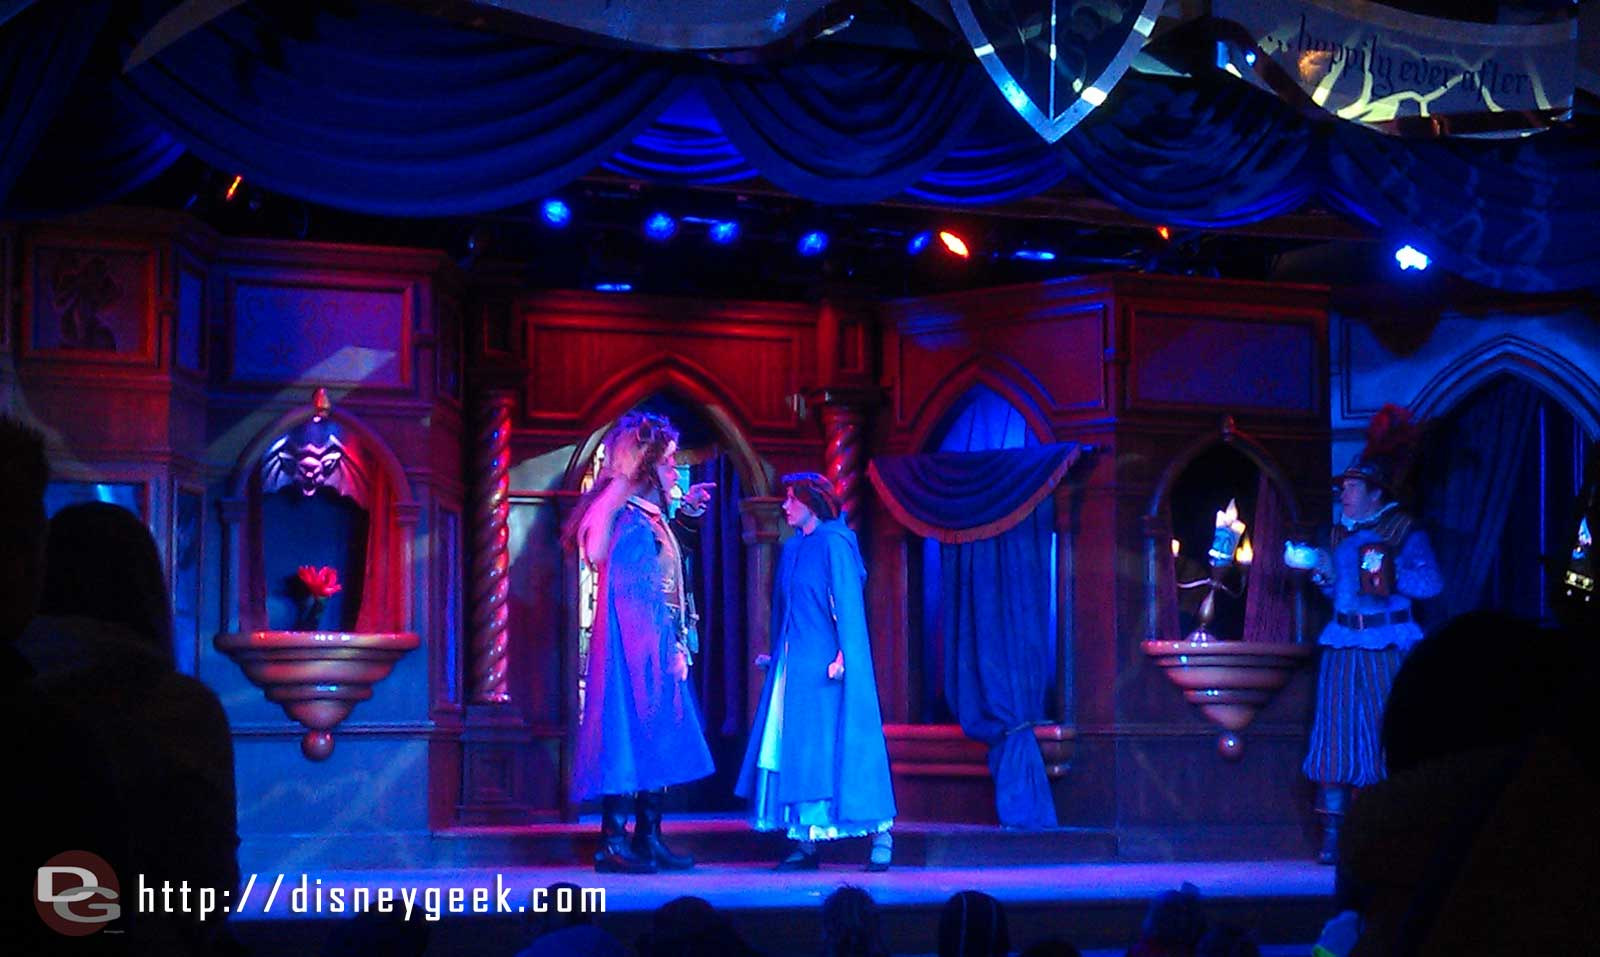 Beauty & the Beast at the Royal Theater